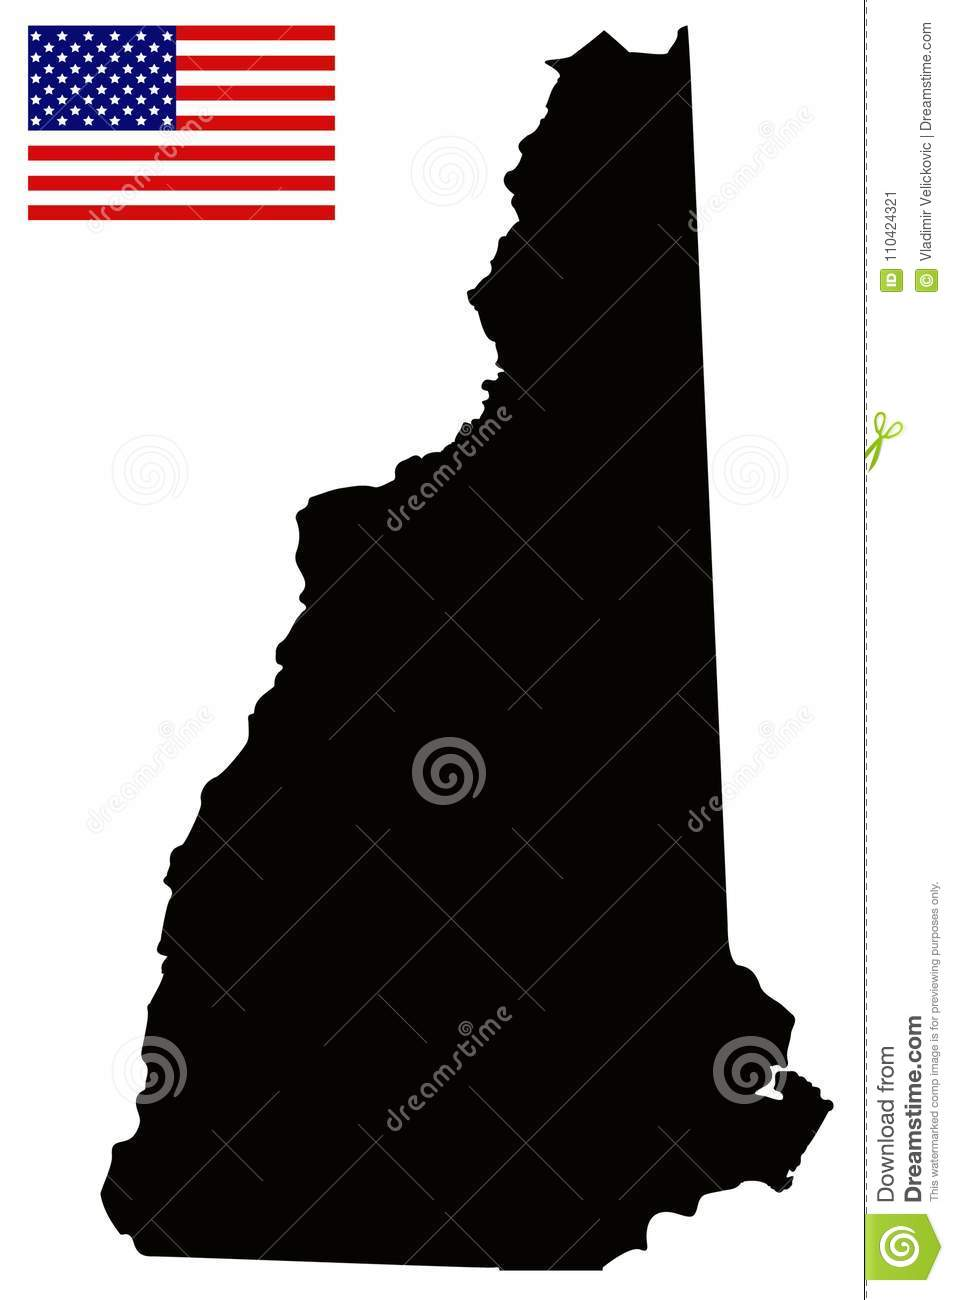 New Hampshire Map With Usa Flag State In The New England Region Of